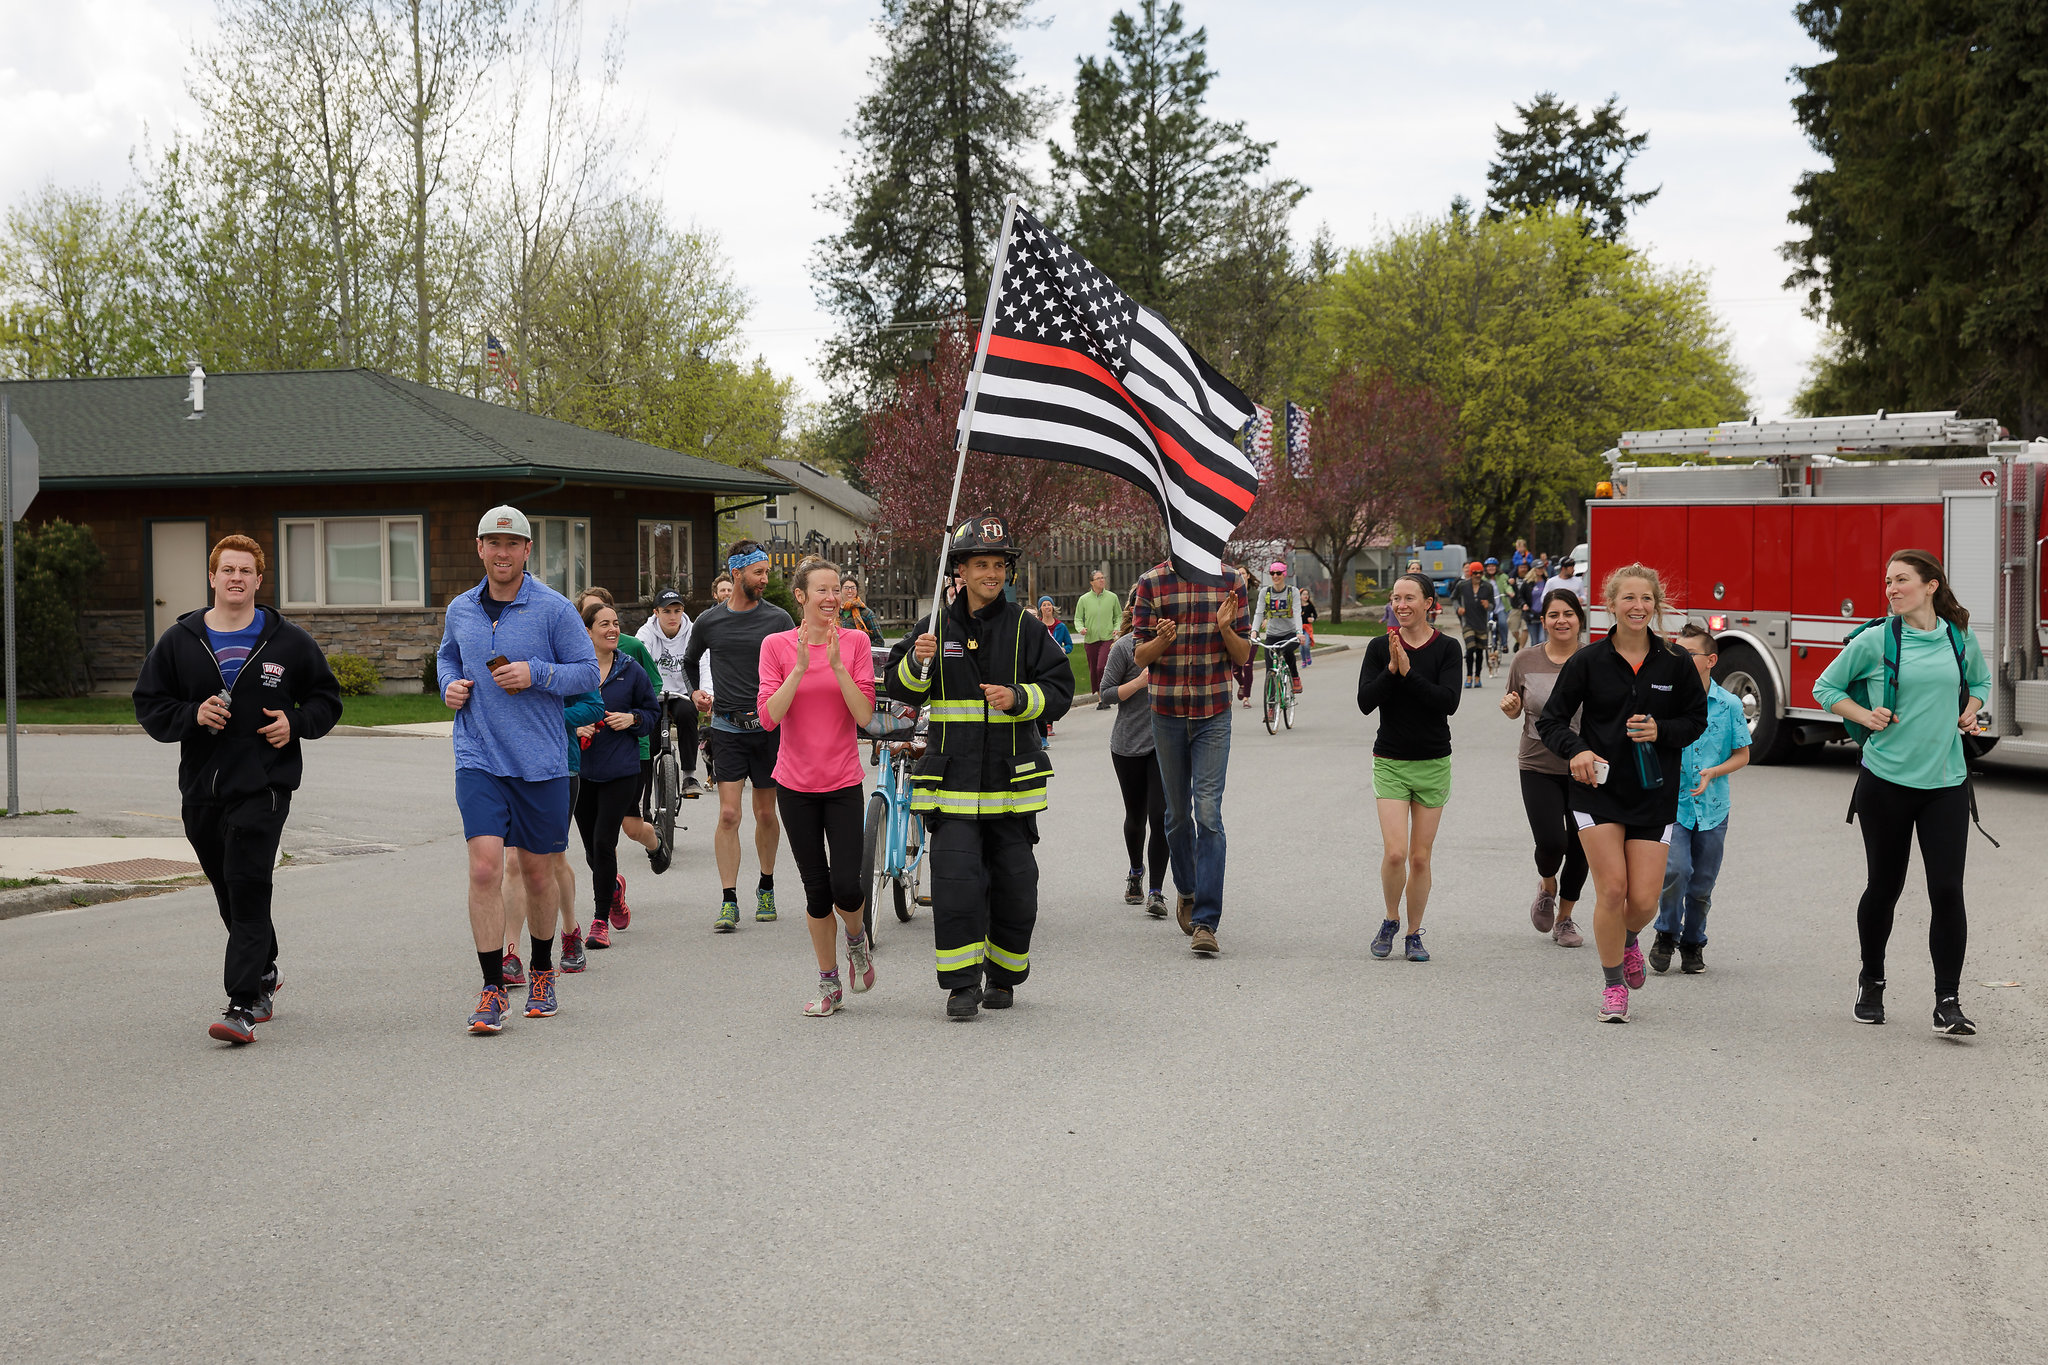 Plant-Positive-AmyHendersonPhotography-100 Mile for Cancer Prevention-180429_Gwen100_174_gc.jpg